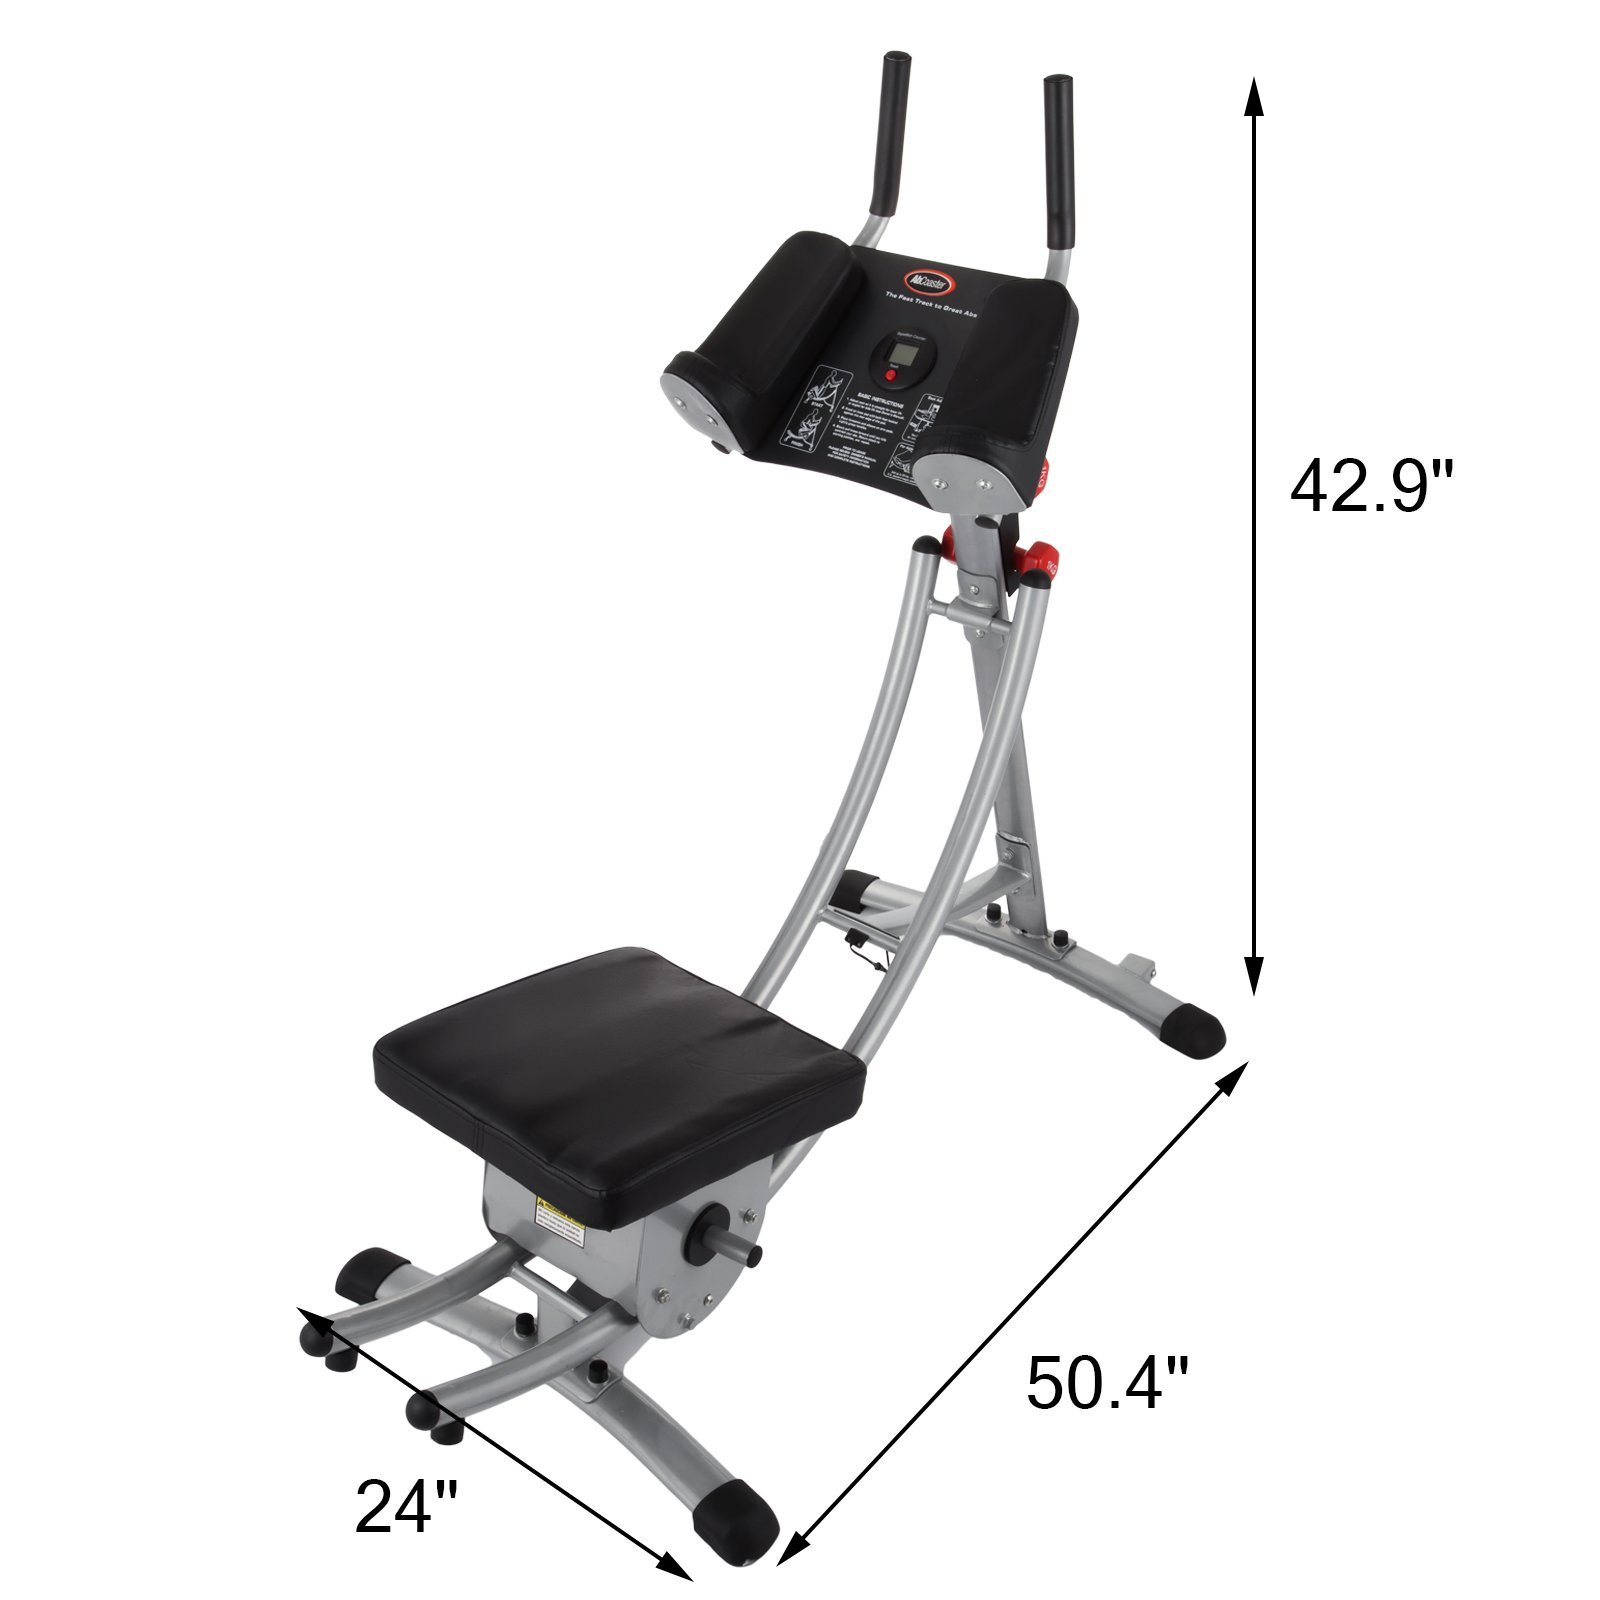 Popsport Abdomen Machine 330LBS Abdominal Coaster Abdomen Exercise Equipment with Adjustable Seat for Abdominal Muscle Training (Ab Coaster with 4 Dumbbells) by Popsport (Image #3)